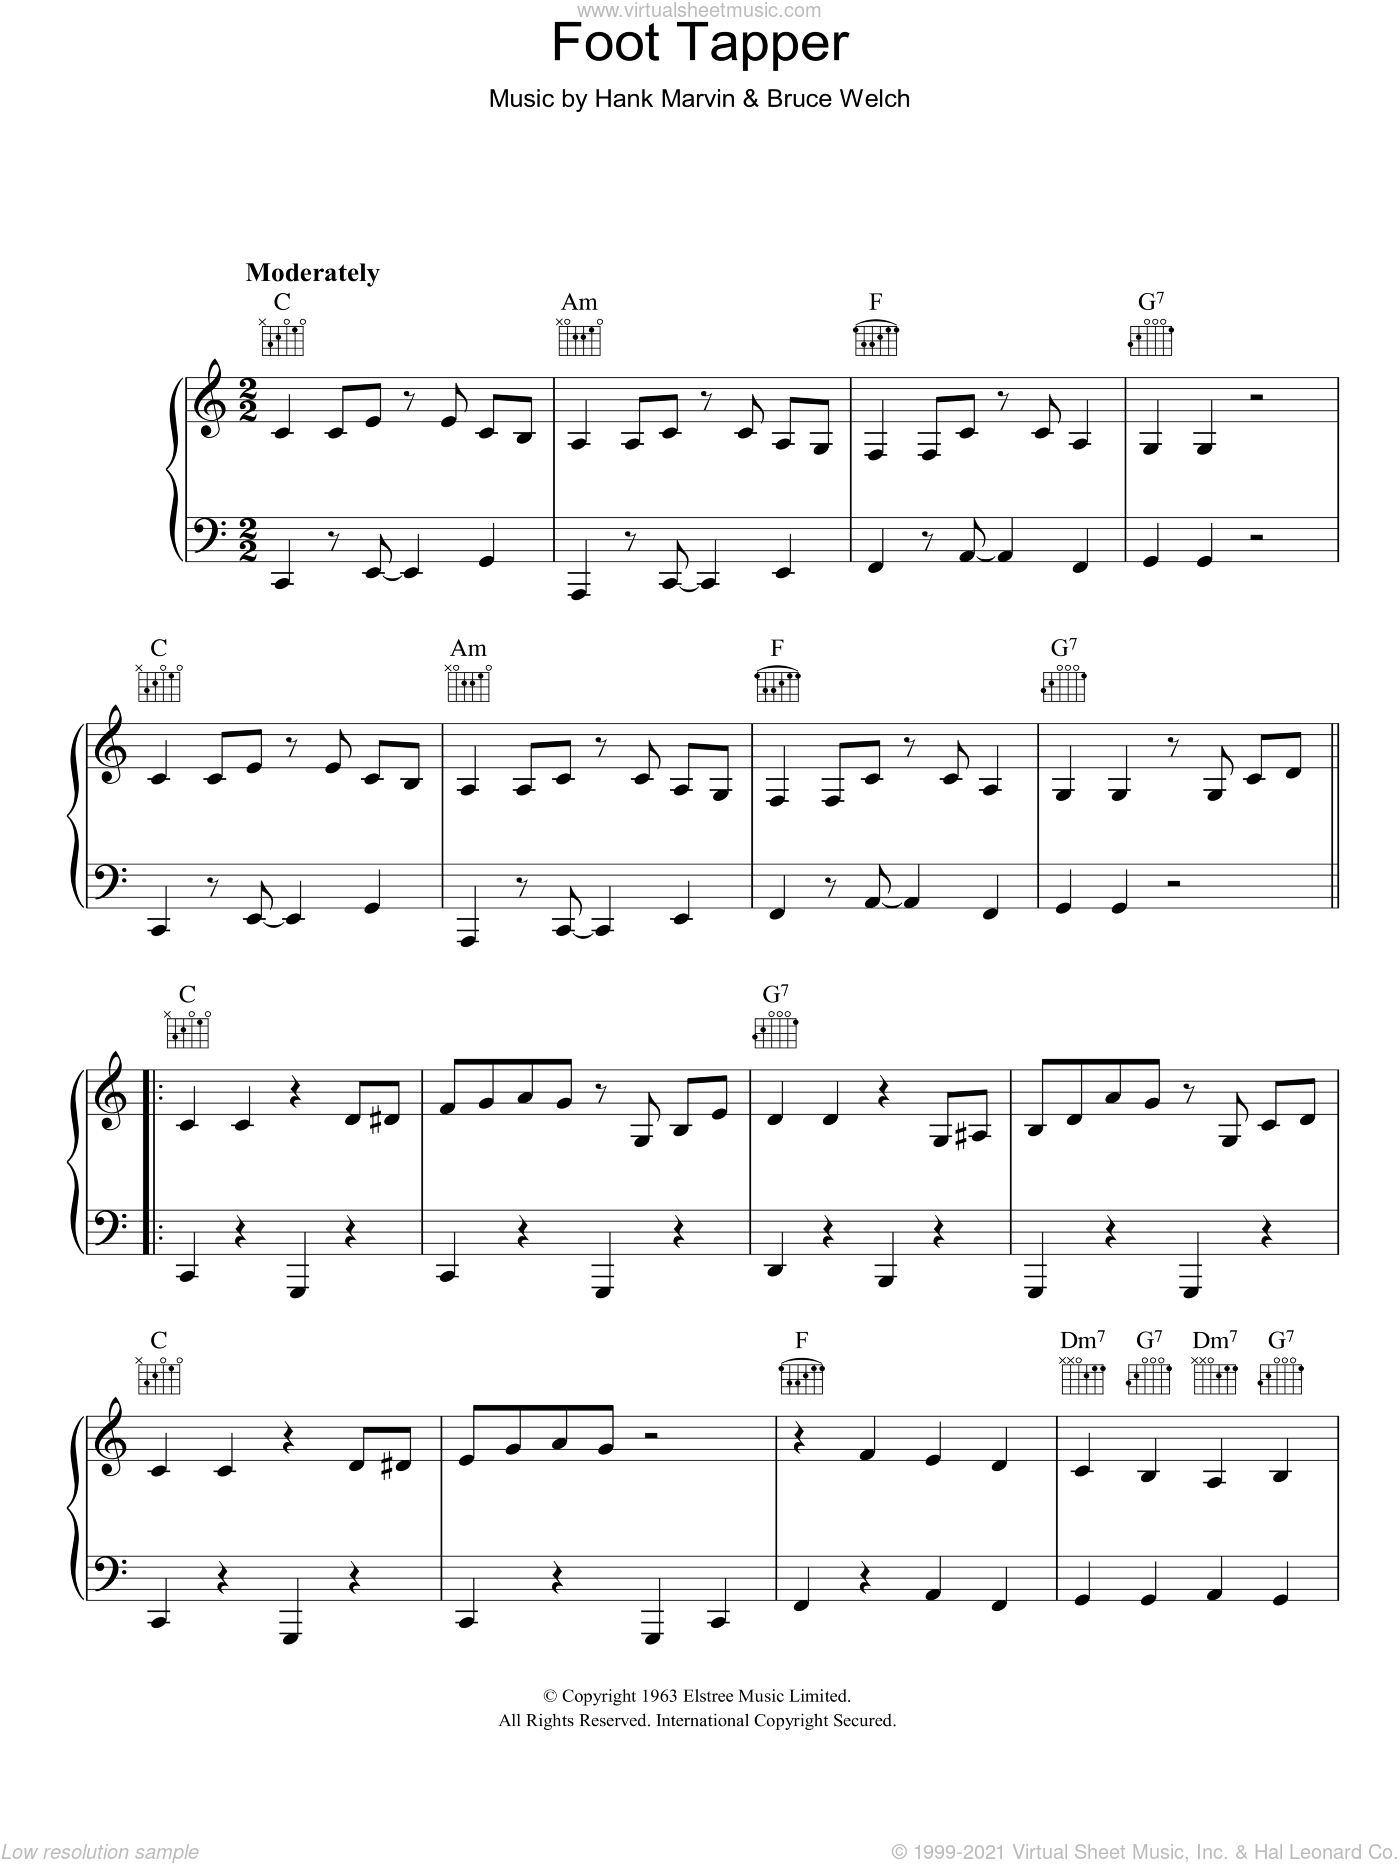 Foot Tapper sheet music for voice, piano or guitar by The Shadows, Bruce Welch and Hank Marvin, intermediate skill level